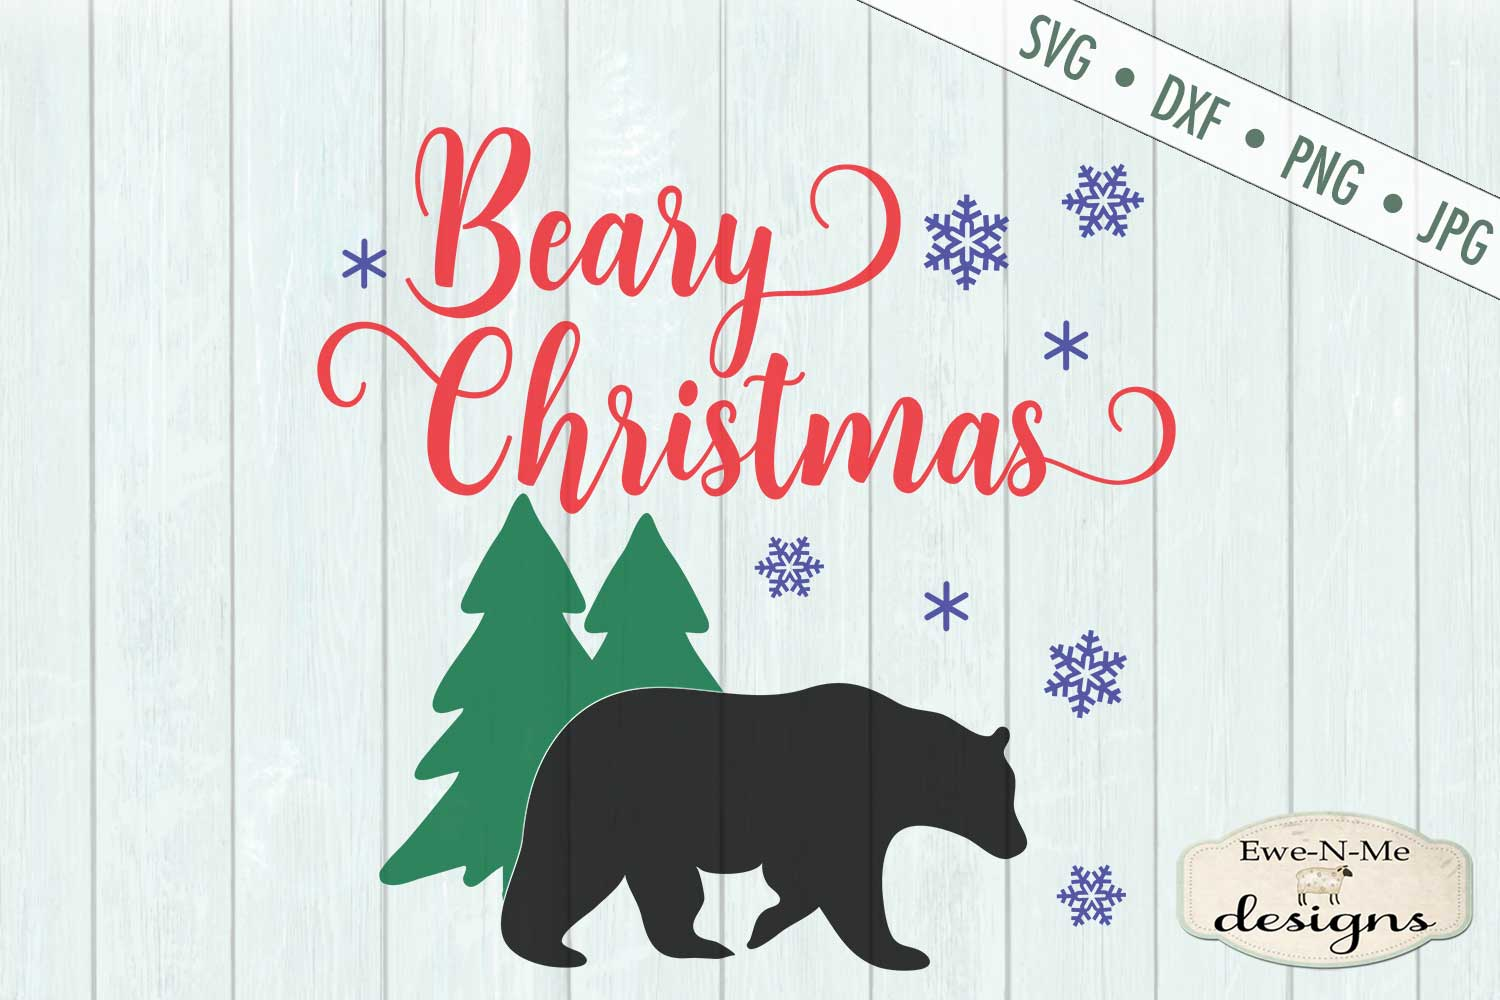 Beary Christmas - Bear - Snowflake - Winter - SVG example image 2